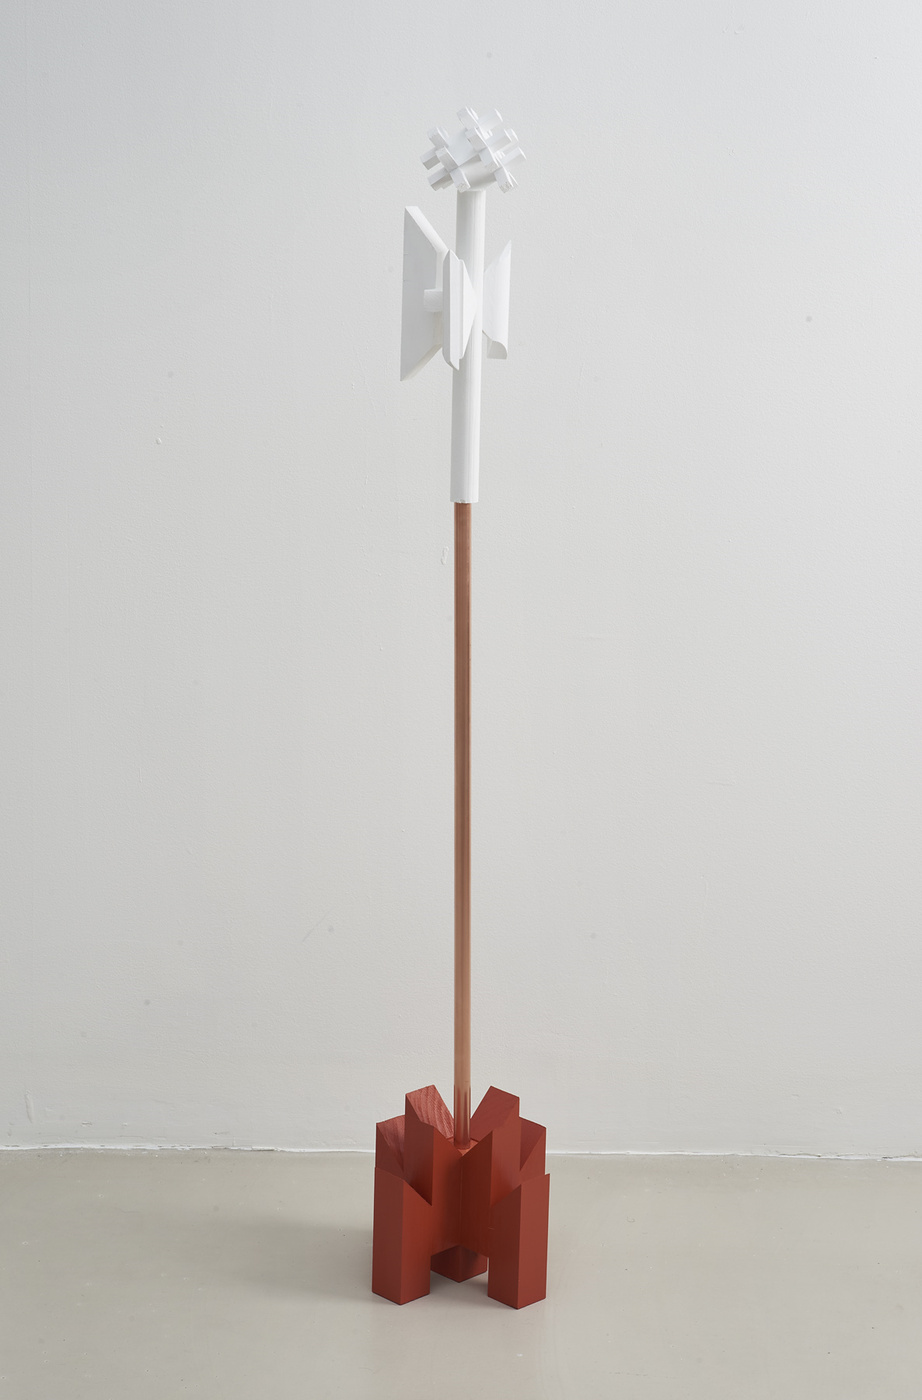 Sutter-Shudo_Pole for the Crib of the Infant Jesus, 2016_43 x 7.5x7.5 inches_NSS00003ST_PRS (1)